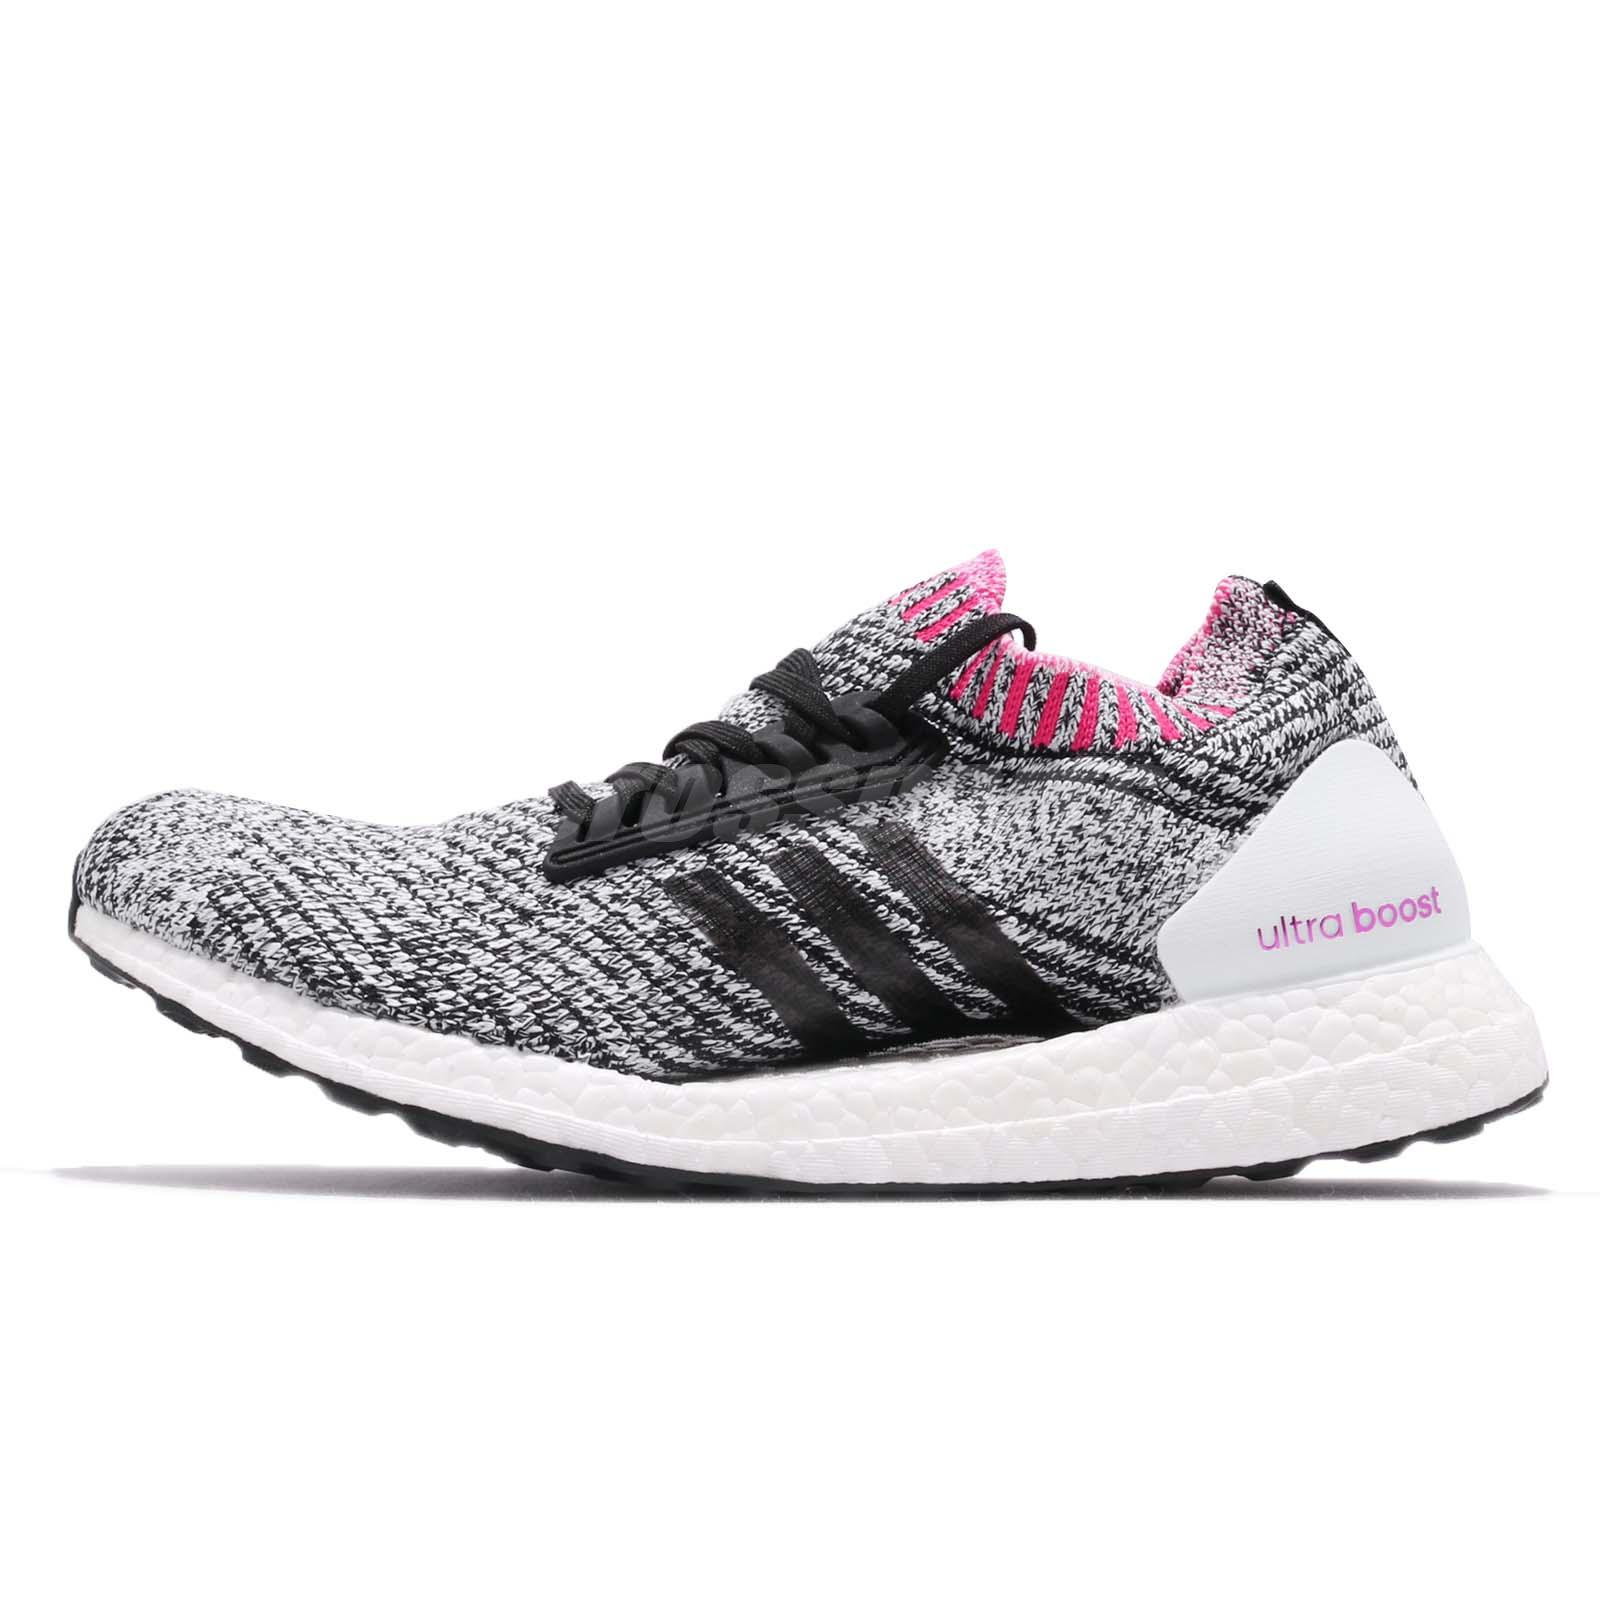 48c64421b3172 adidas UltraBOOST X White Black Shock Pink Women Running Shoes Sneakers  BB6524